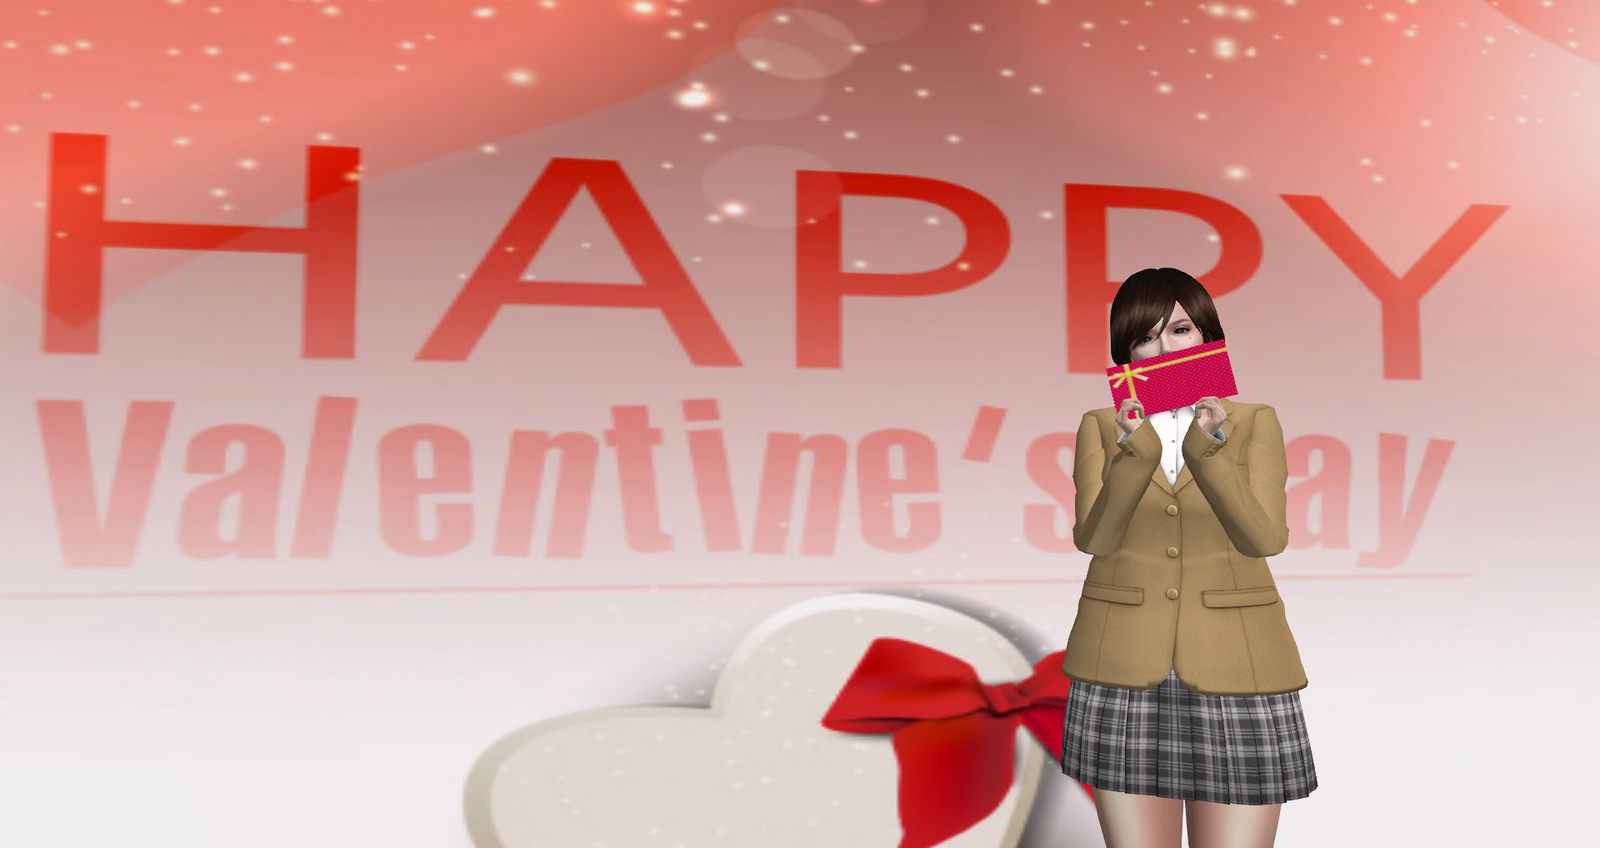 Happy_Valentine_Day_Wallpapers_8